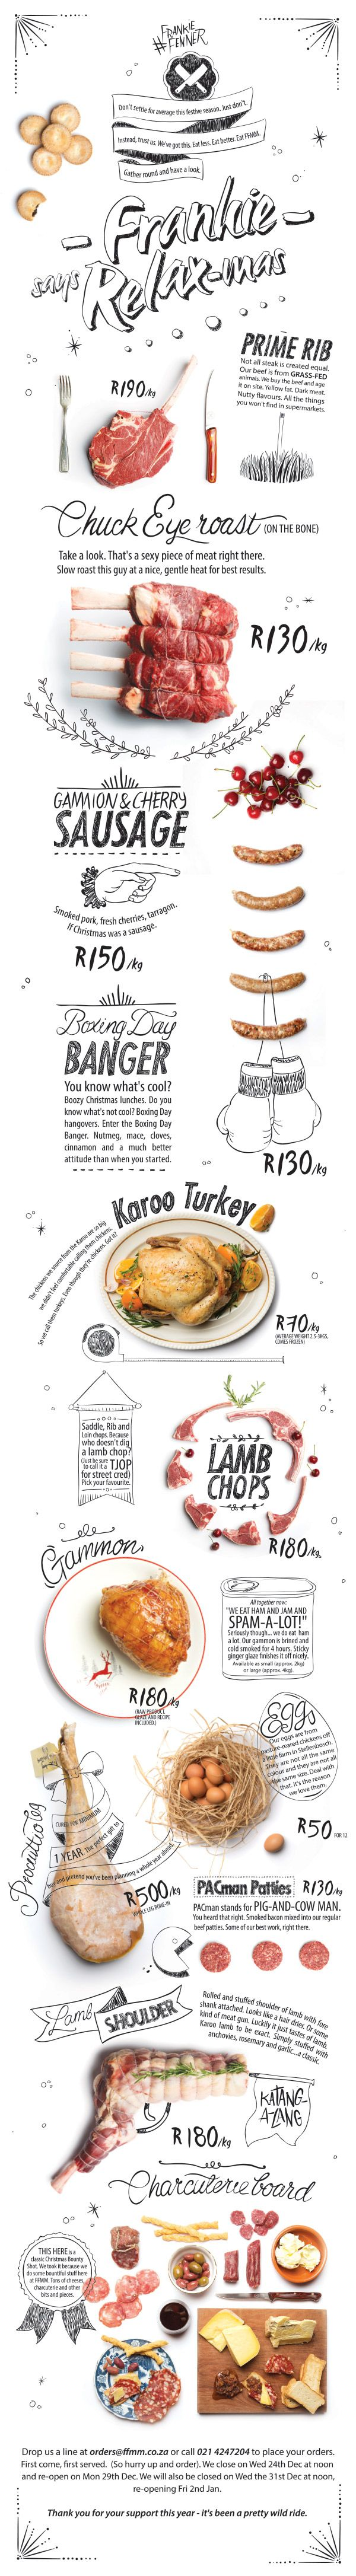 Unique Infographic Design #Infographic #Design #Christmas